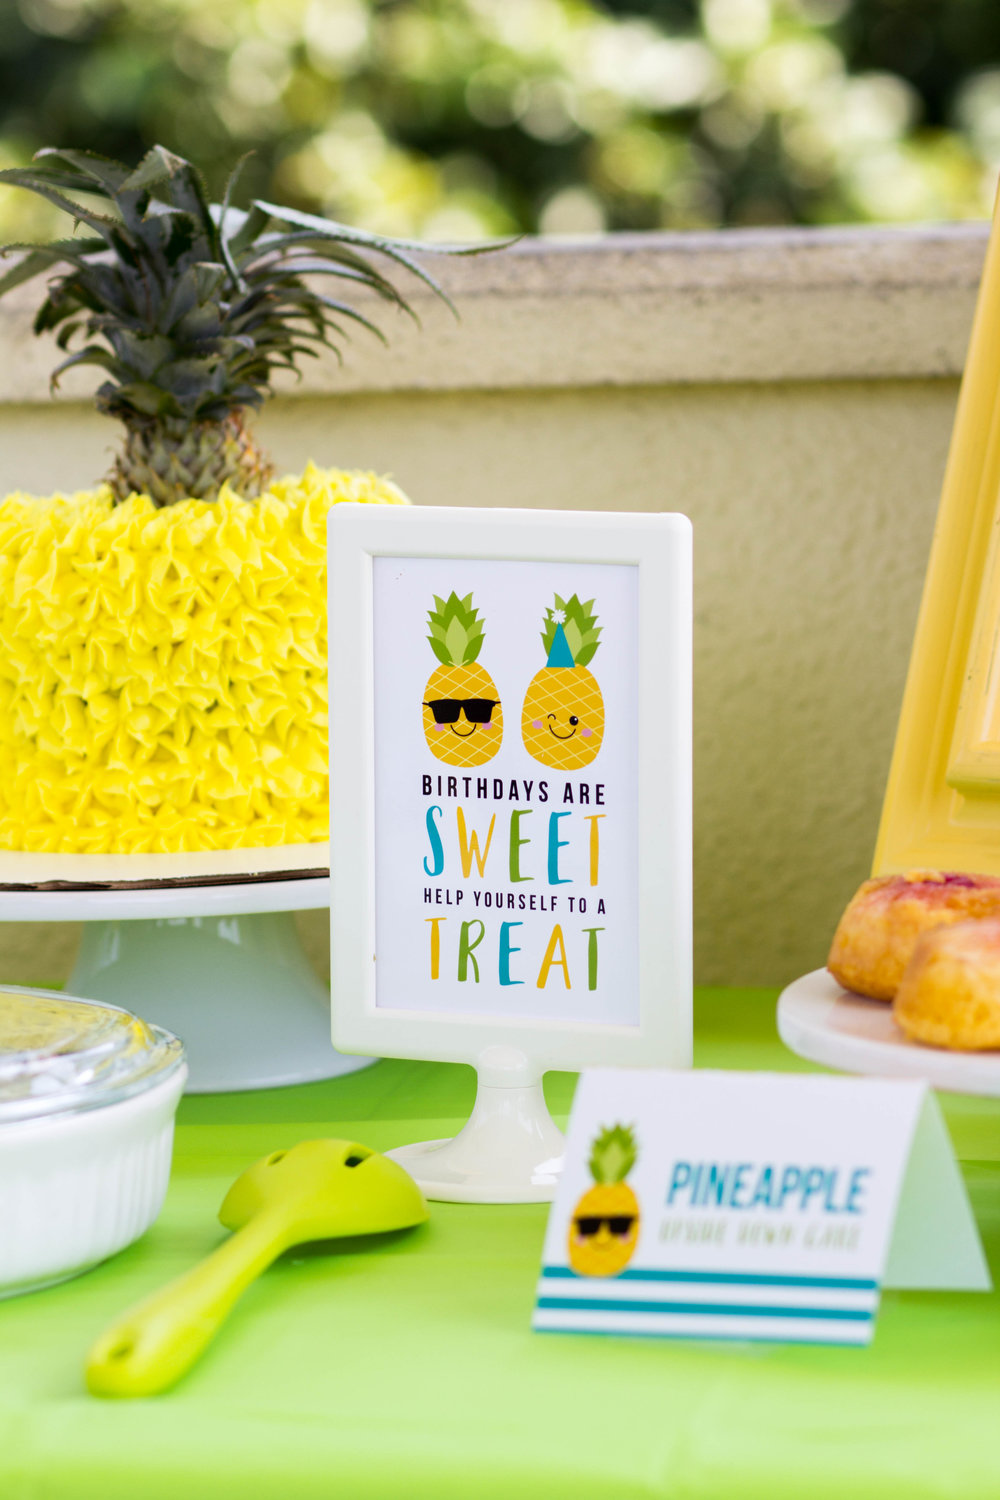 Birthdays Are Sweet Pineapple Sign